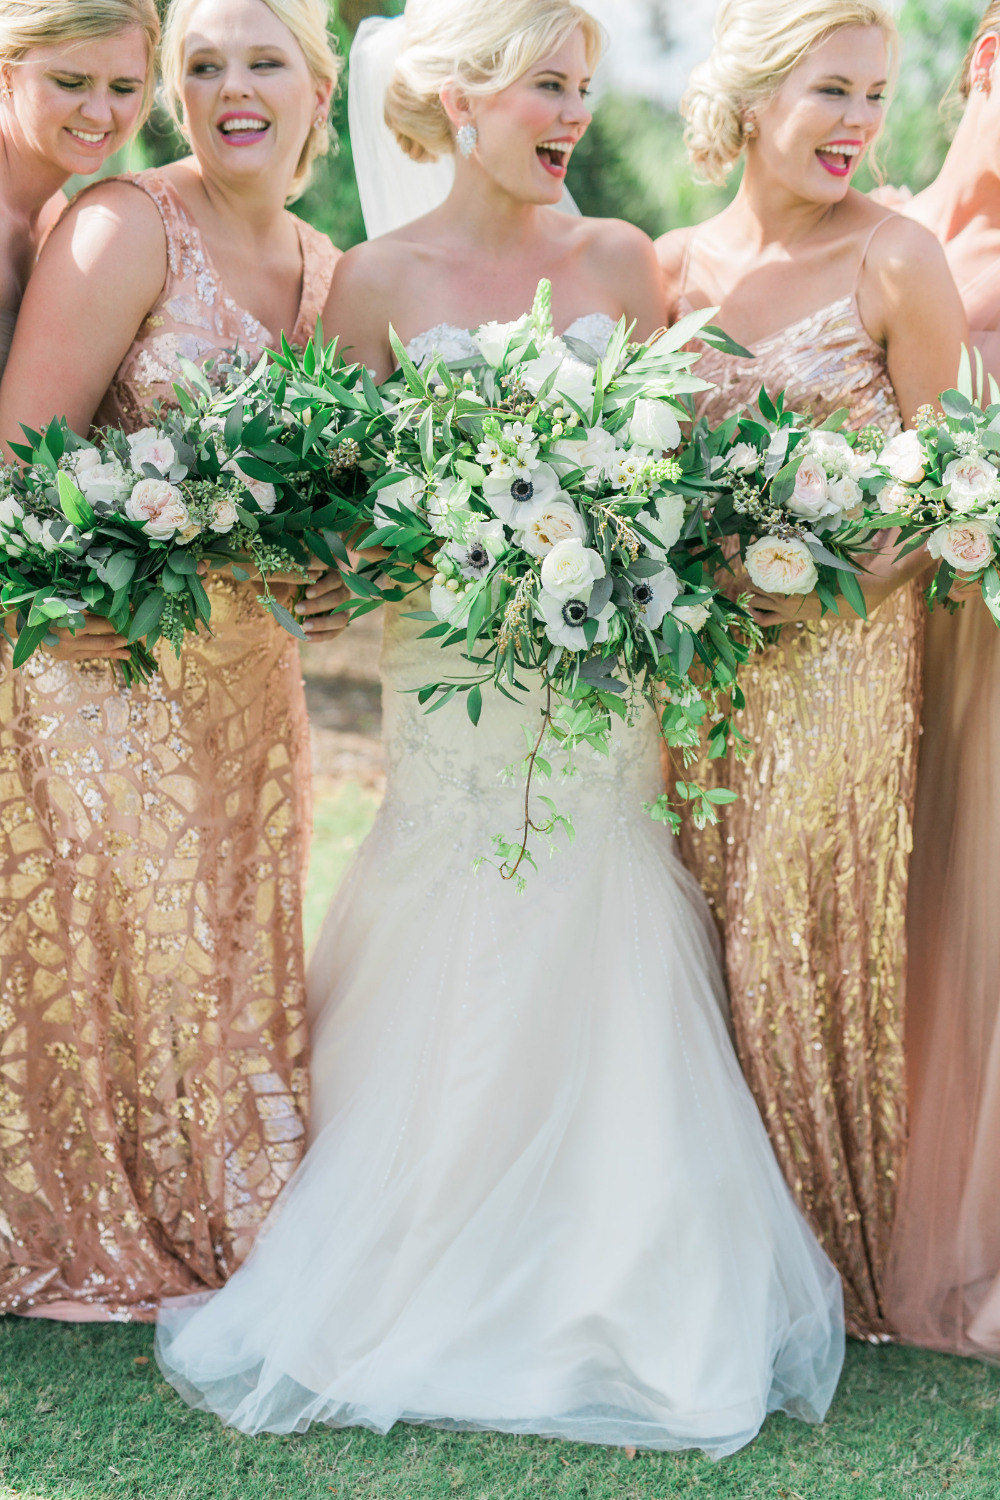 fun bridesmaids photo with pink and gold dresses